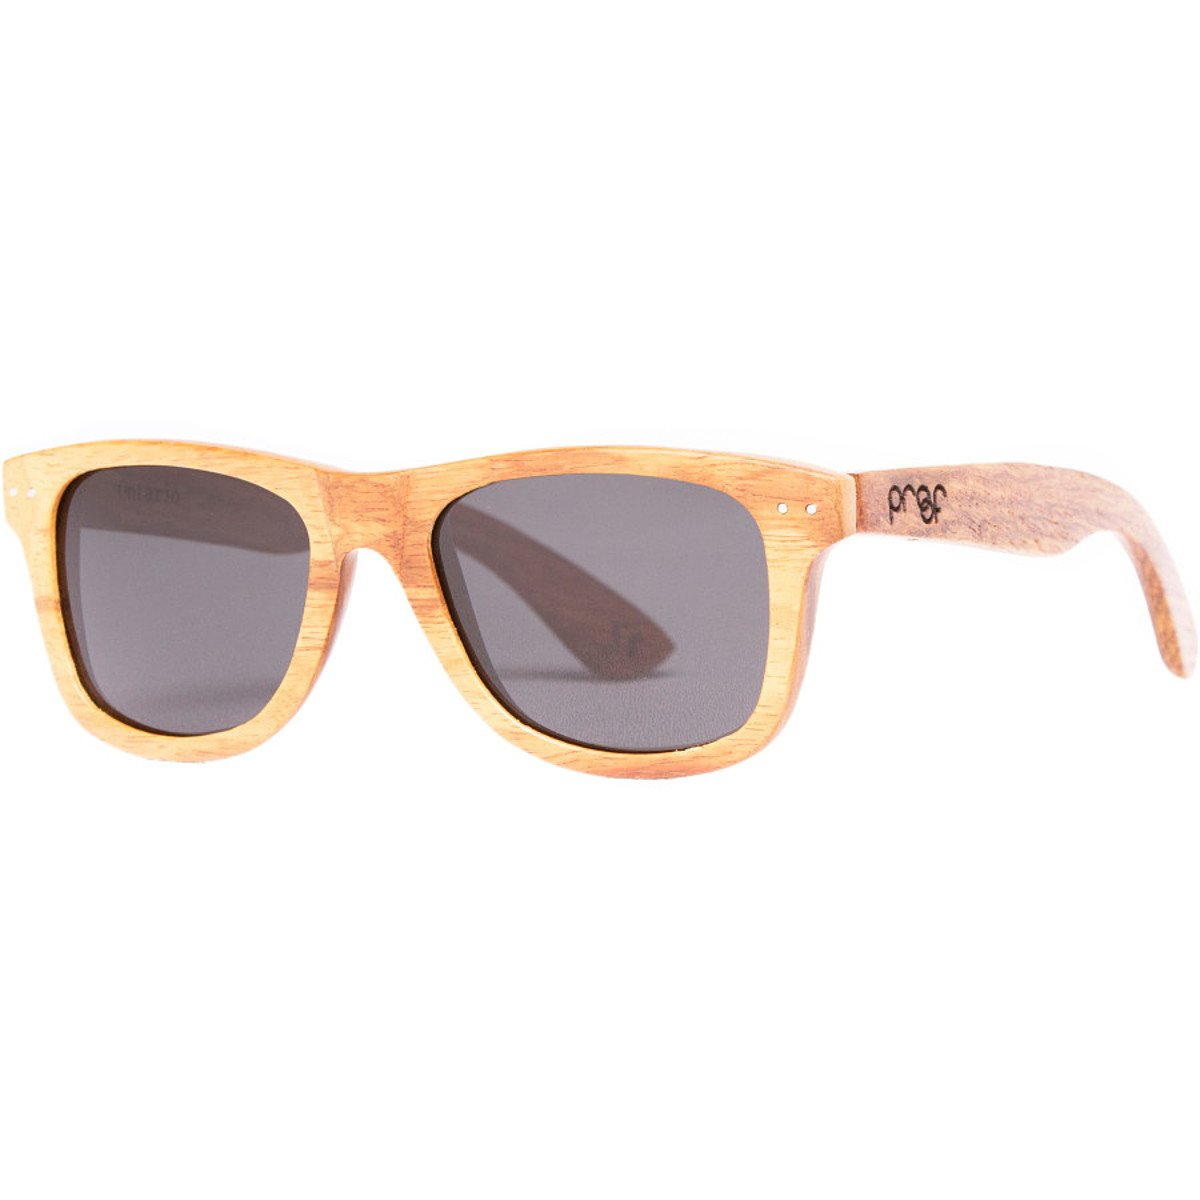 55cd9c7334 Amazon.com  Proof Eyewear Ontario Wood Sunglasses Bamboo Gray Lens ...